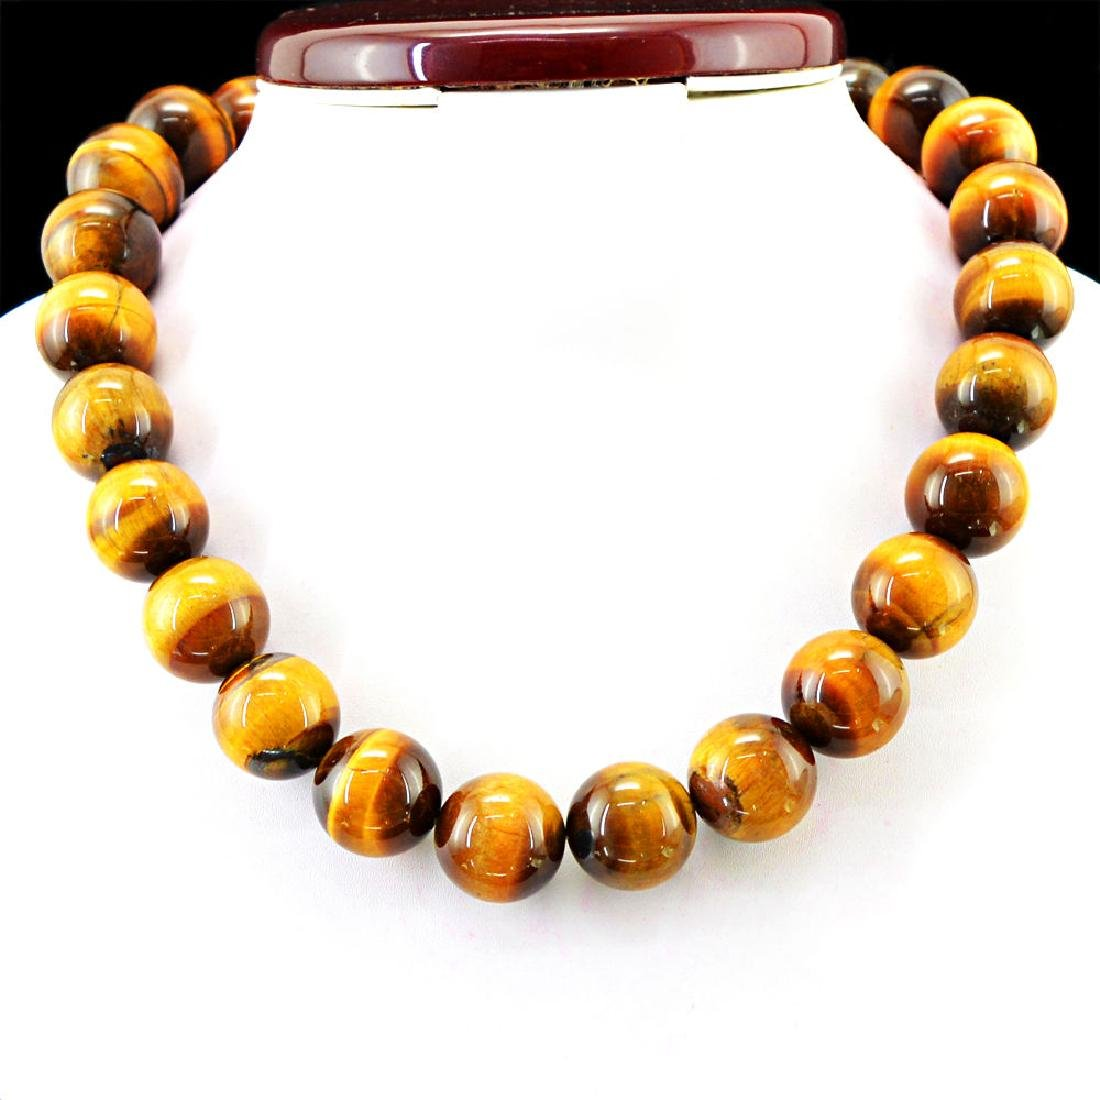 NATURAL RICH GOLDEN TIGER EYE UNTREATED ROUND SHAPED